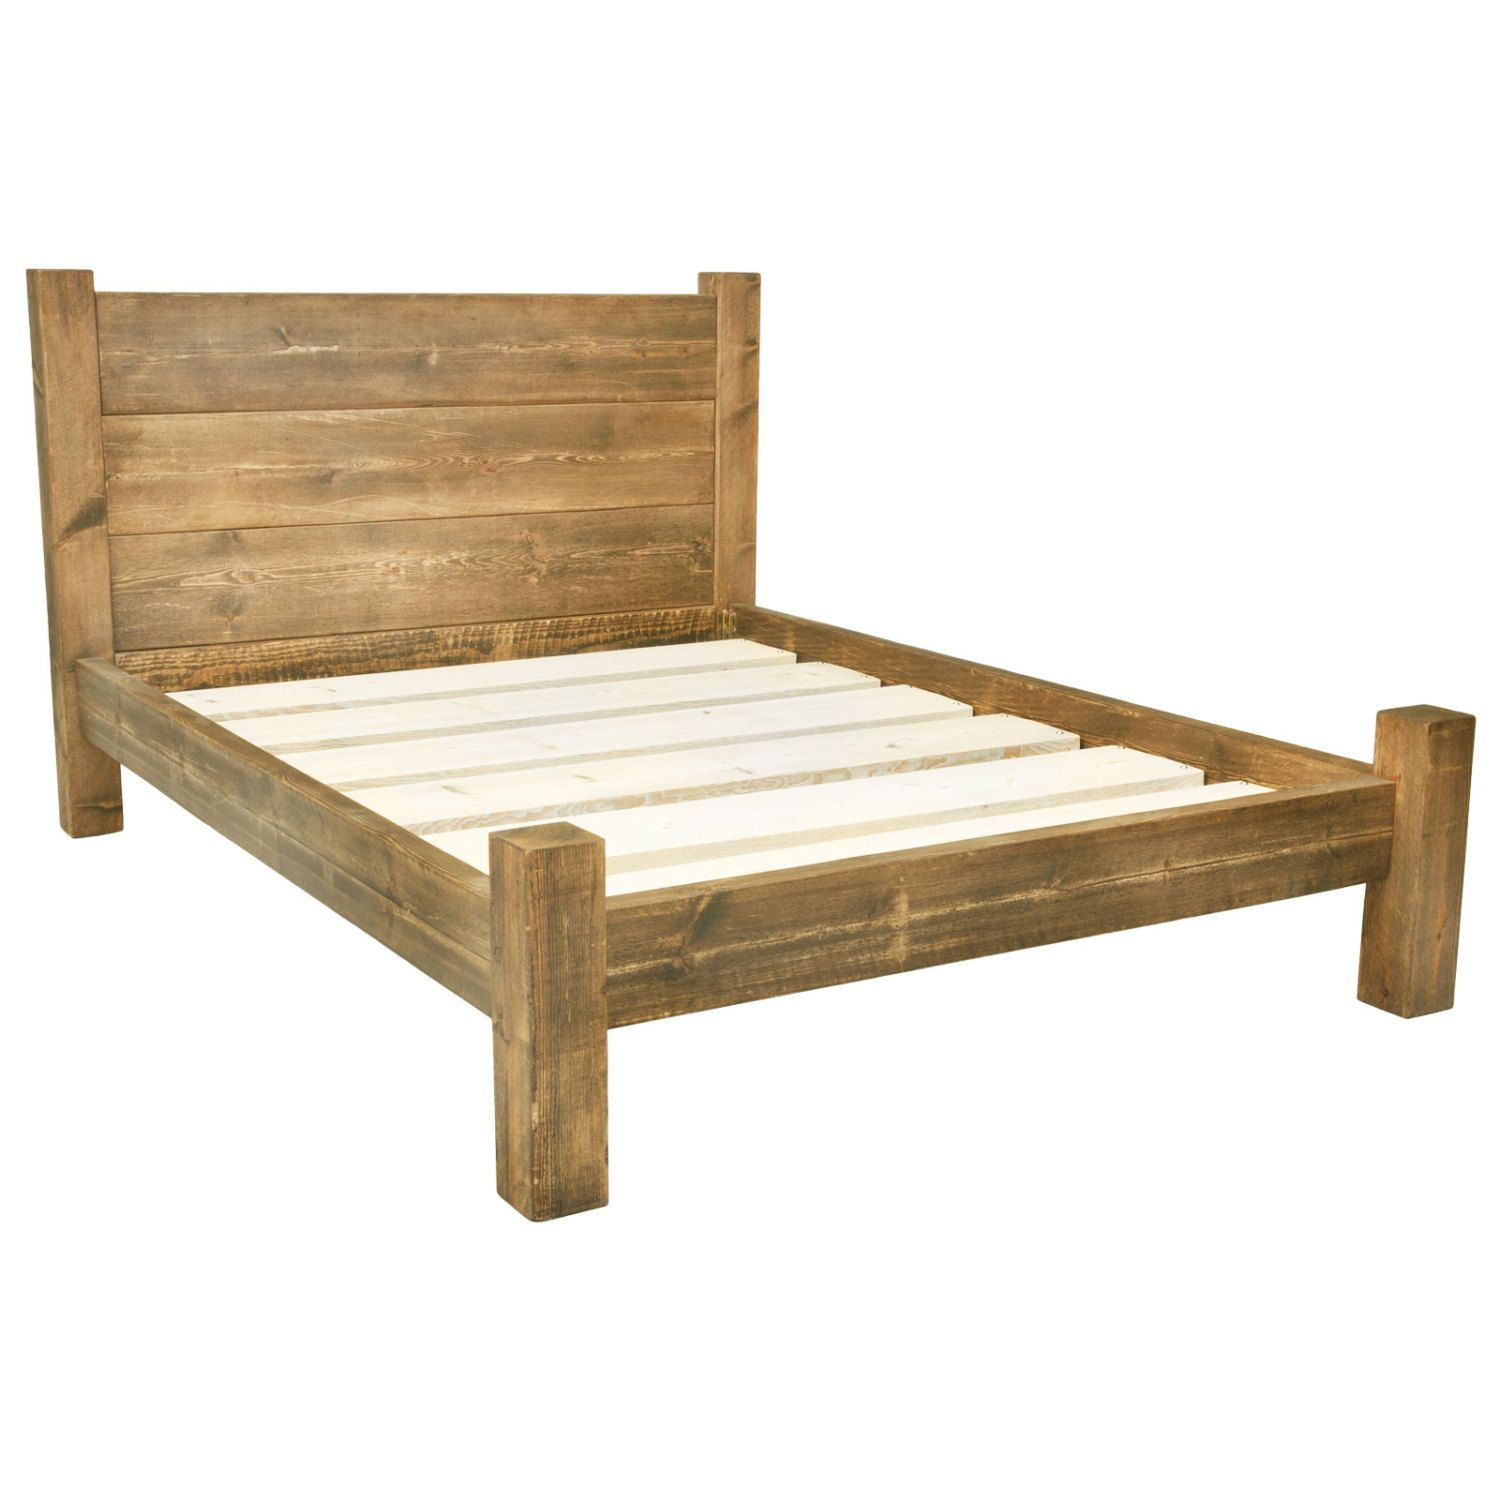 Solid Wooden Chunky Bed Frame In A Choice Of Sizes Single, Double,  Kingsize, Super King And Rustic Wax Finishes With Treble Plank Headboard Awesome Ideas